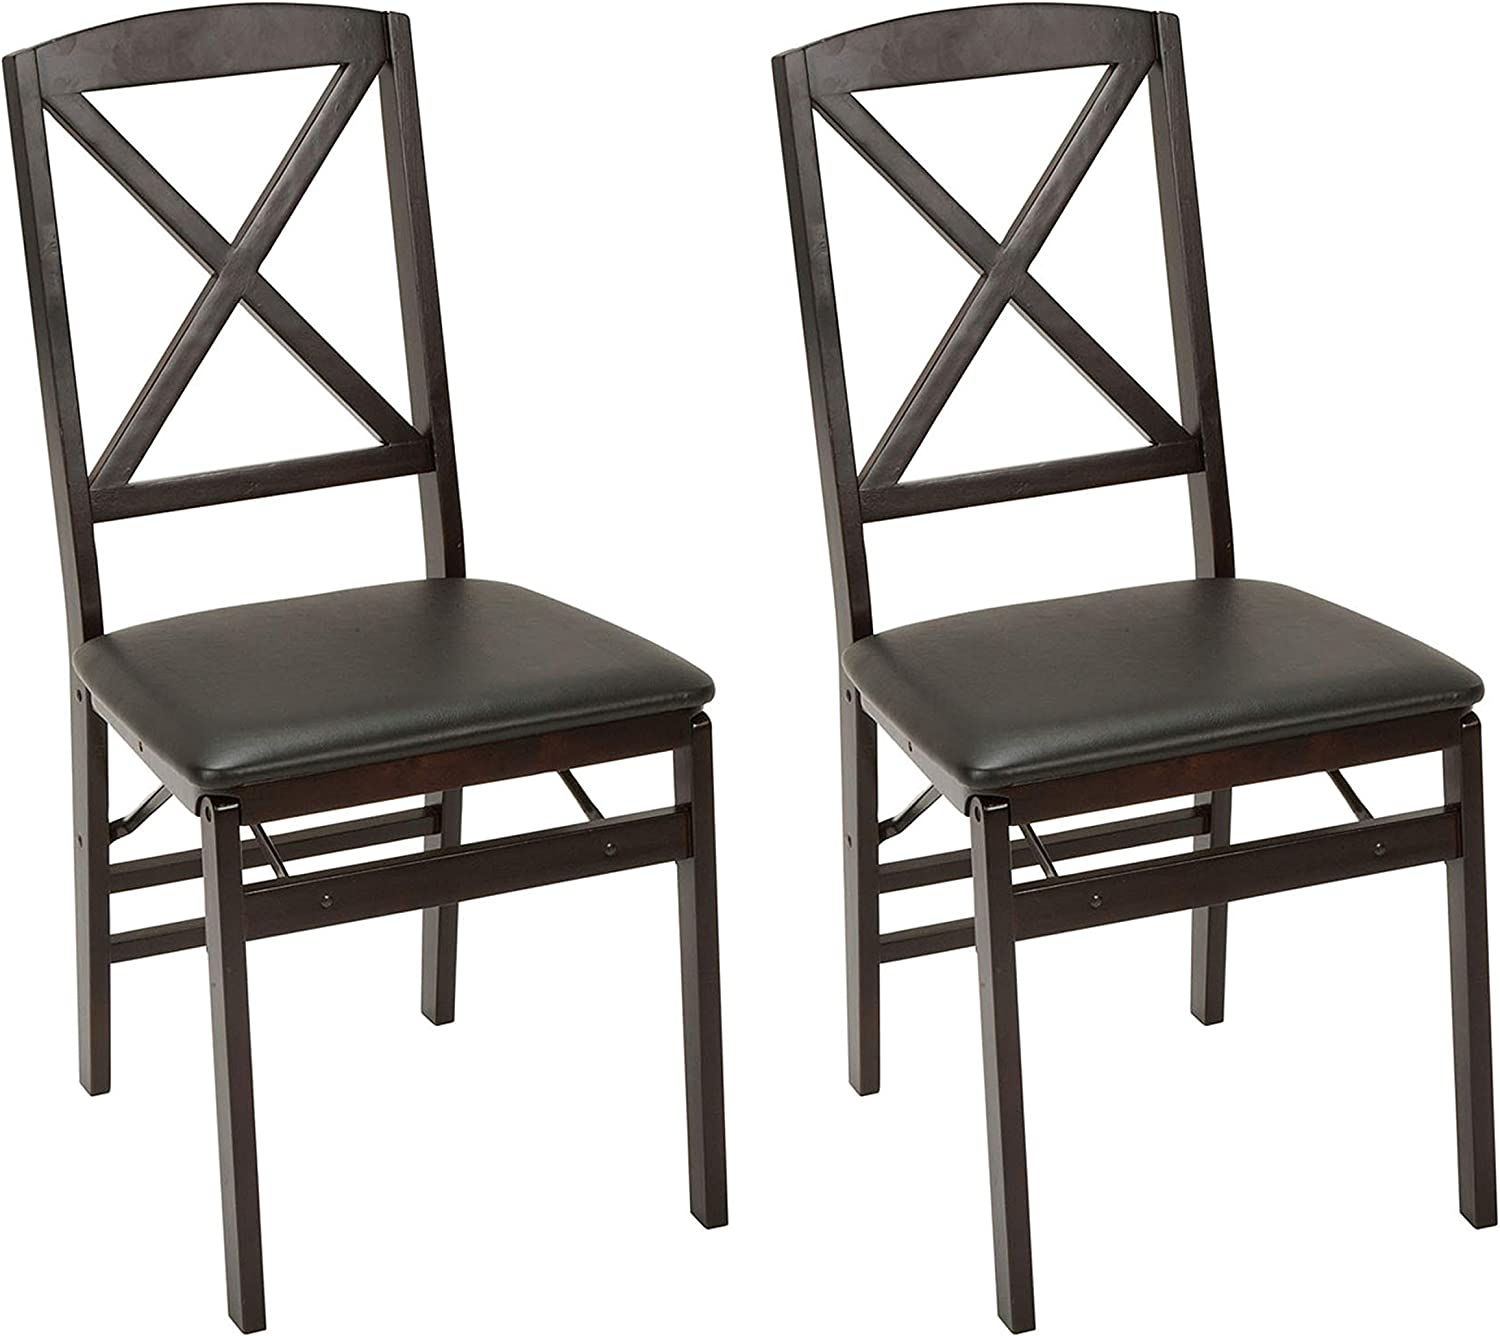 Cosco Espresso Wood Folding Chair with vinyl seat X-Back 2-pack